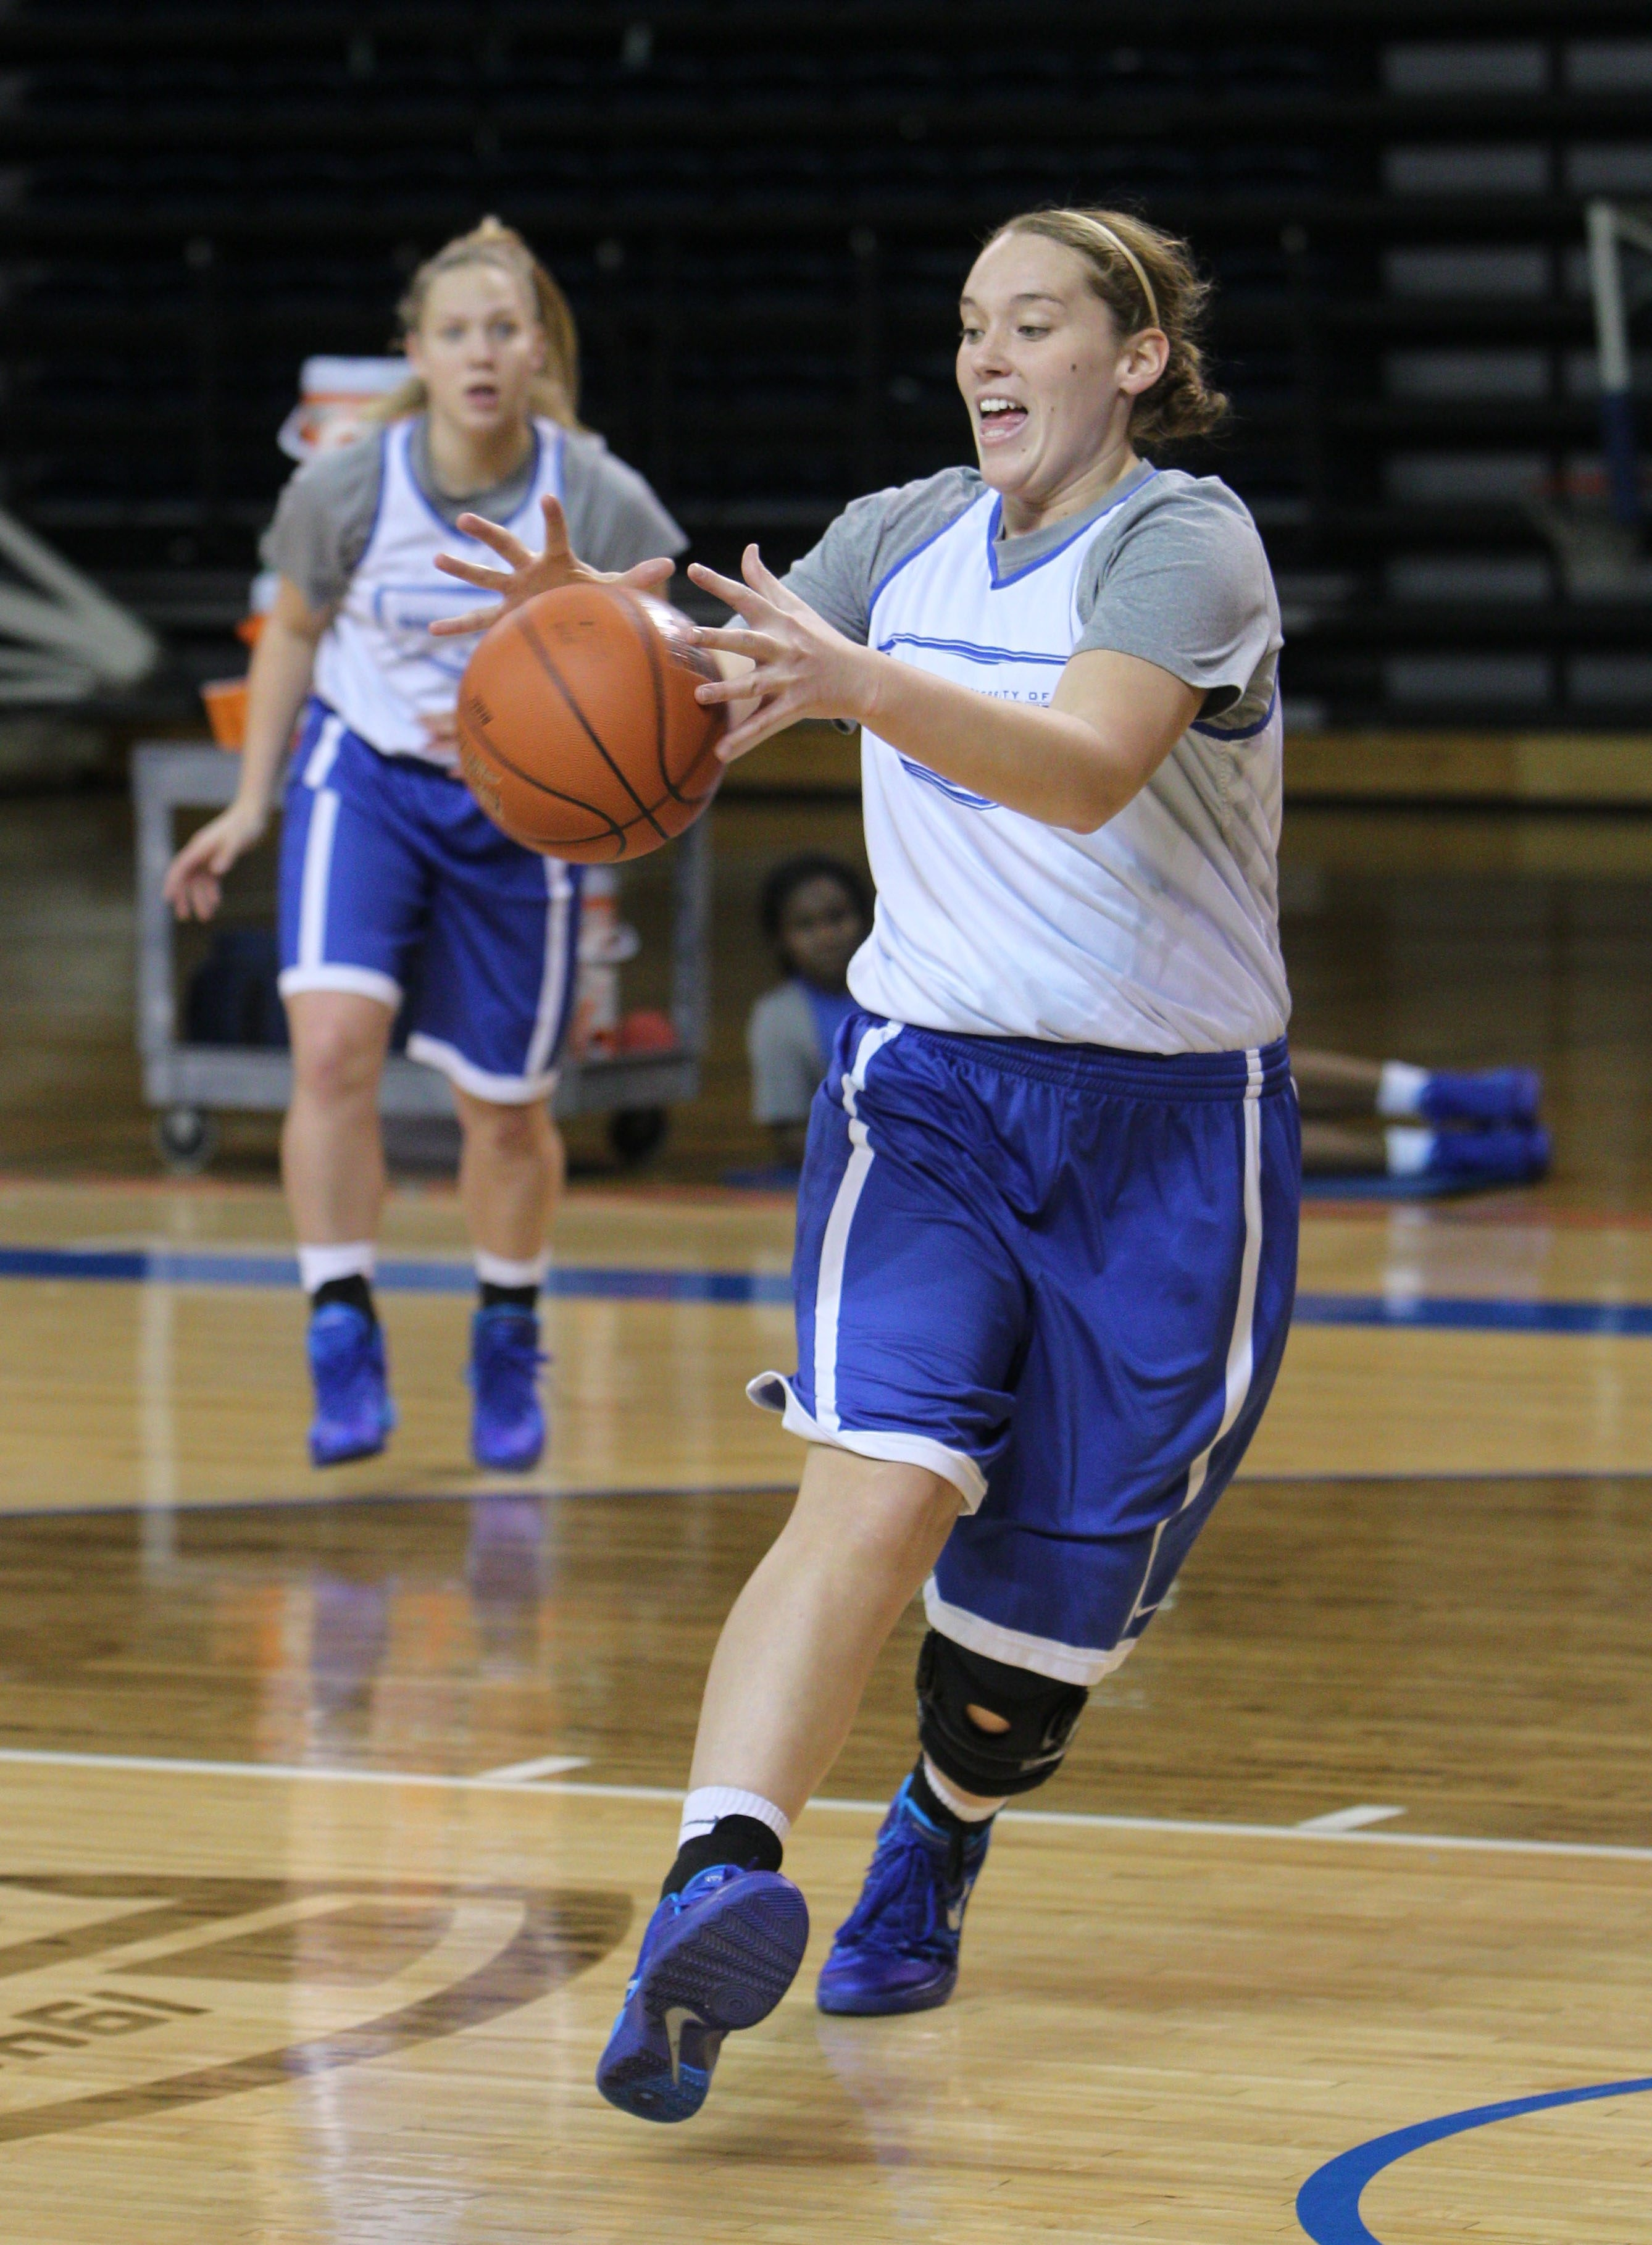 Junior Kristen Sharkey is one of the keys to Buffalo's aggressiveness in the low post.